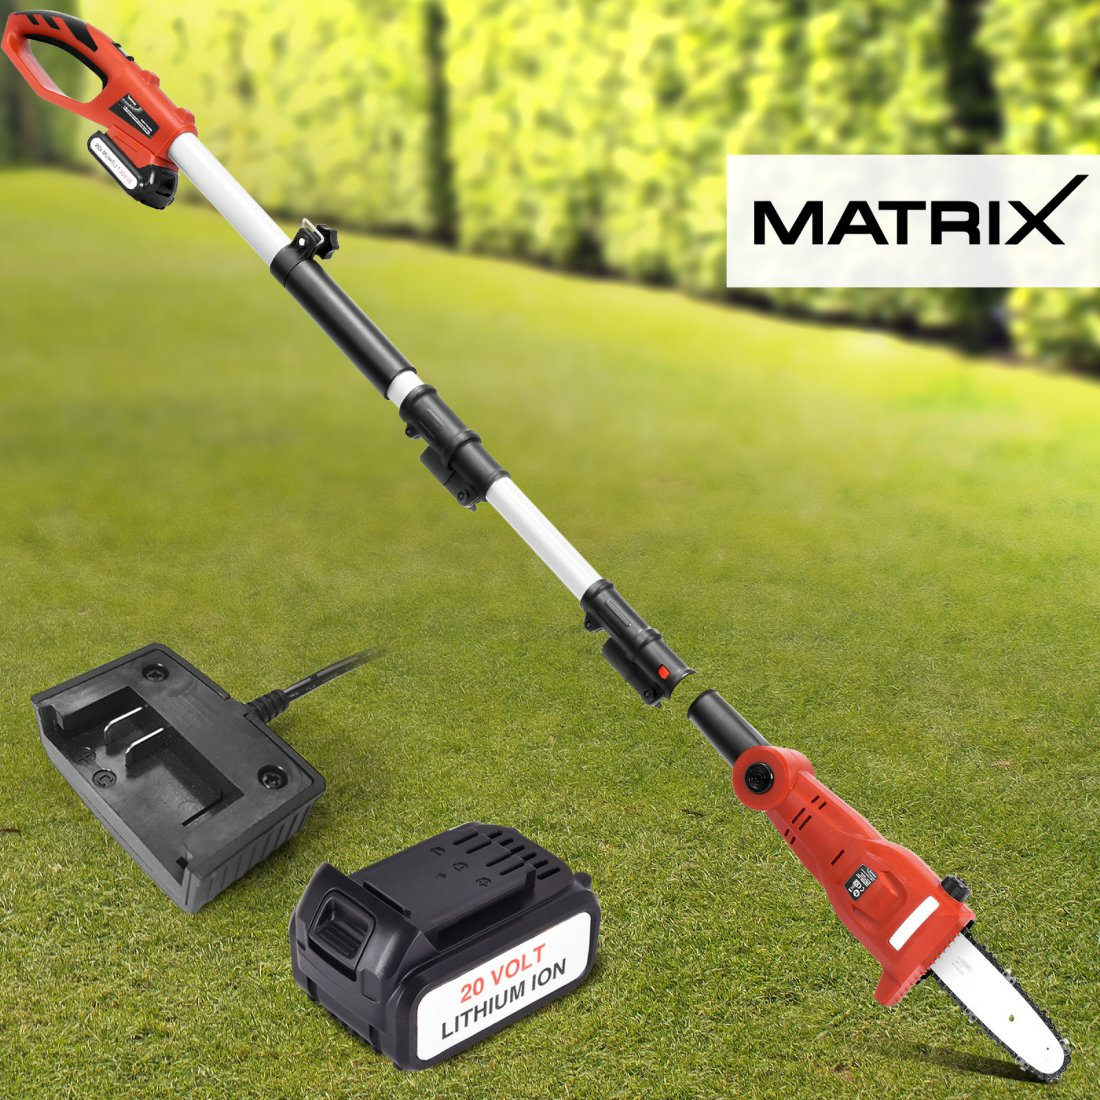 Matrix 20V Cordless Pole Chainsaw Head Attachment 4.0ah Lithium Battery Charger